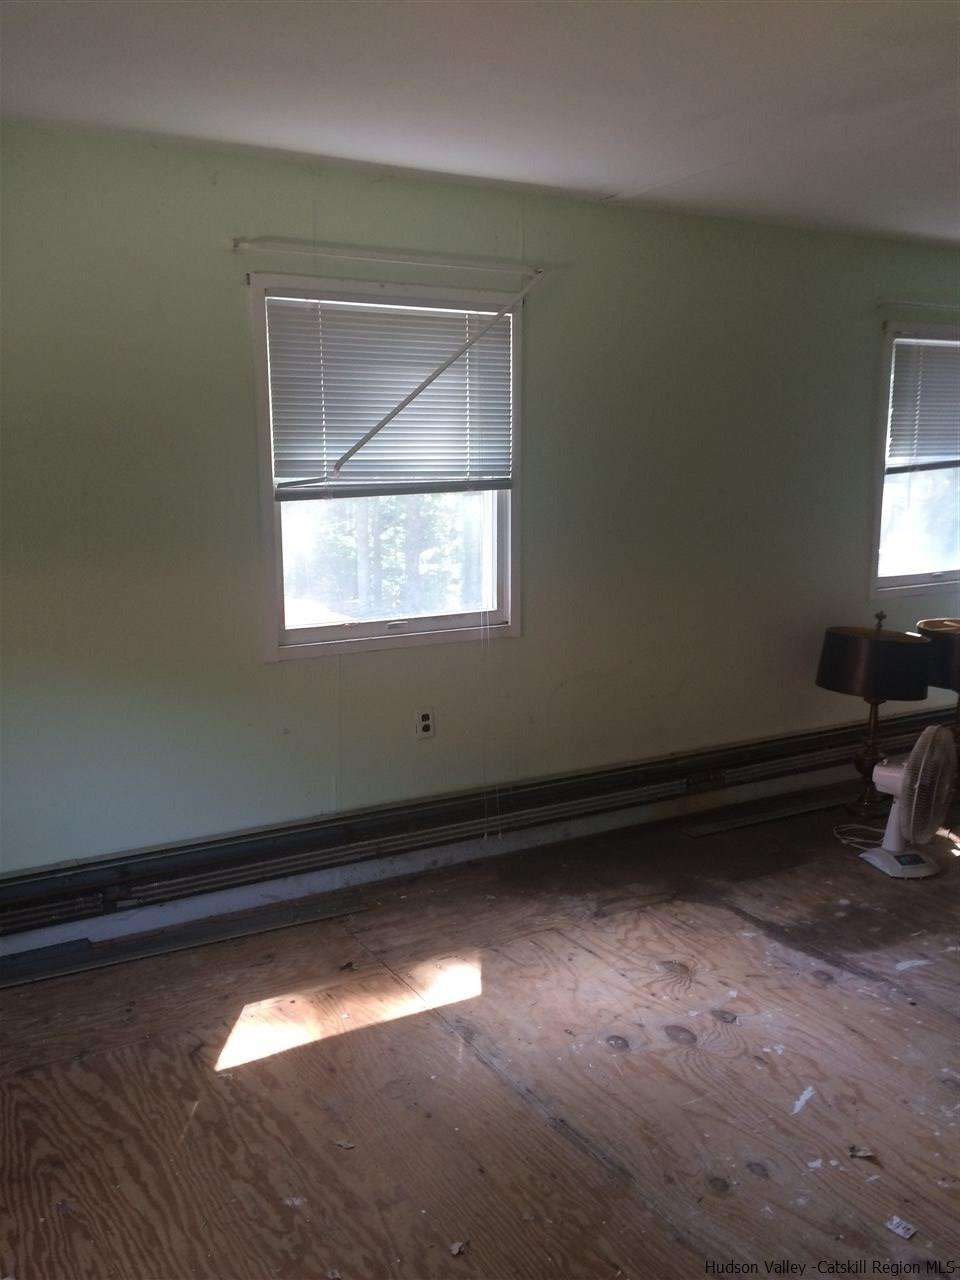 Additional photo for property listing at 175 SHOLAM ROAD 175 SHOLAM ROAD Napanoch, New York 12458 United States